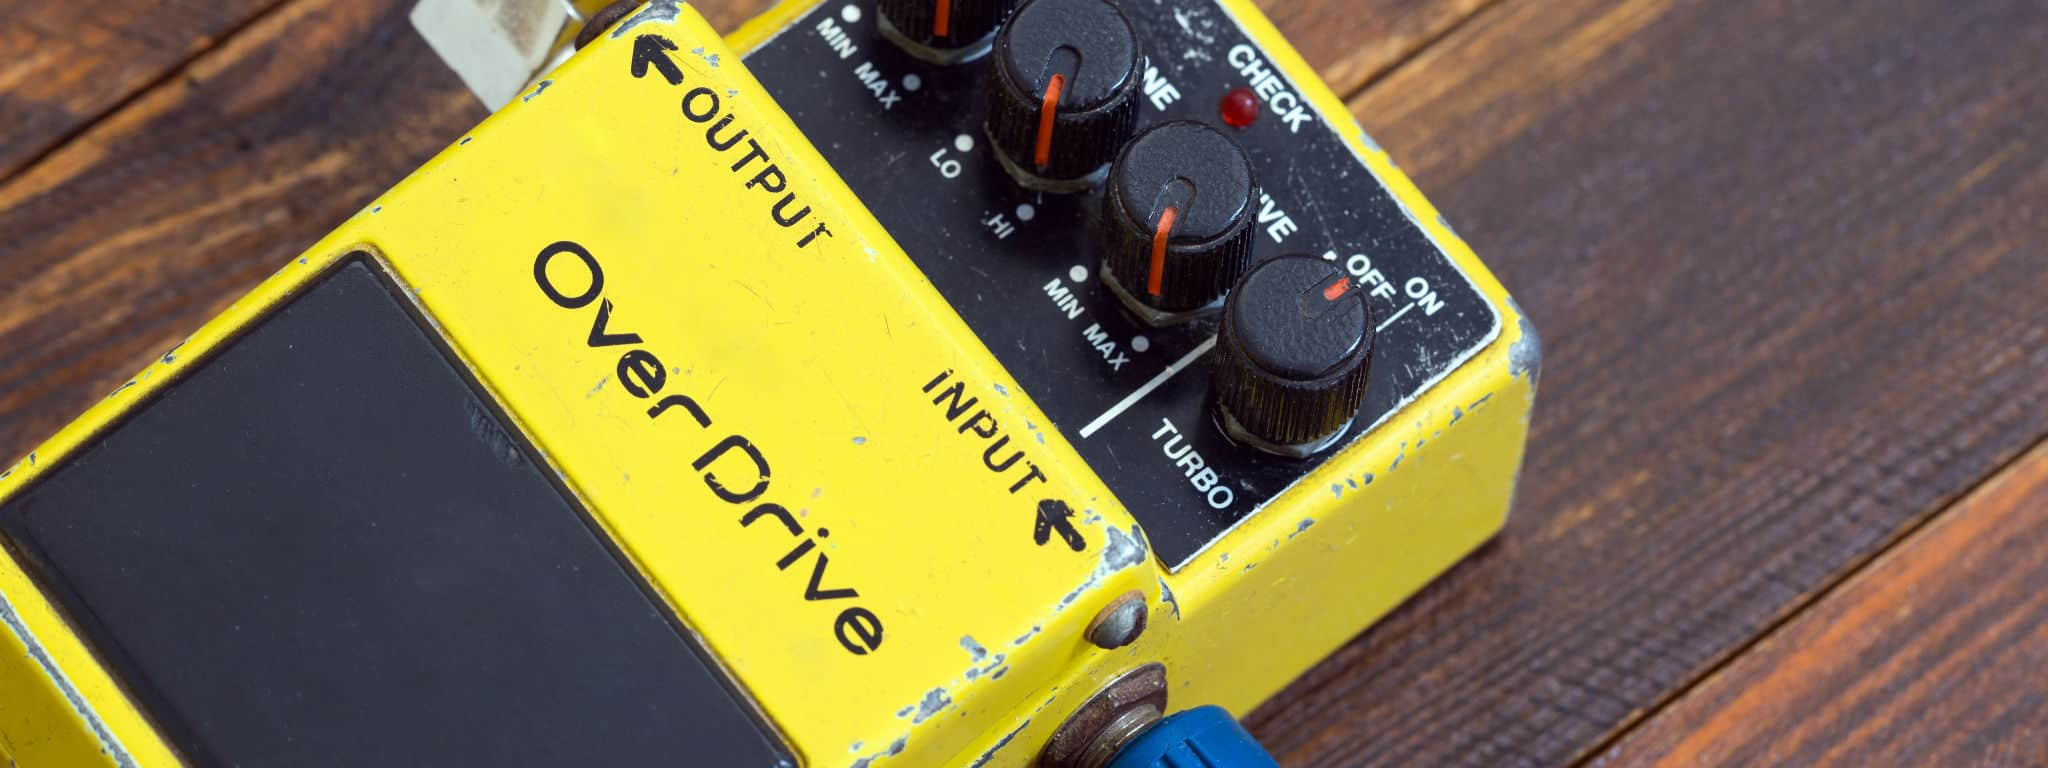 Boss OD-1 Overdrive pedal in Yellow